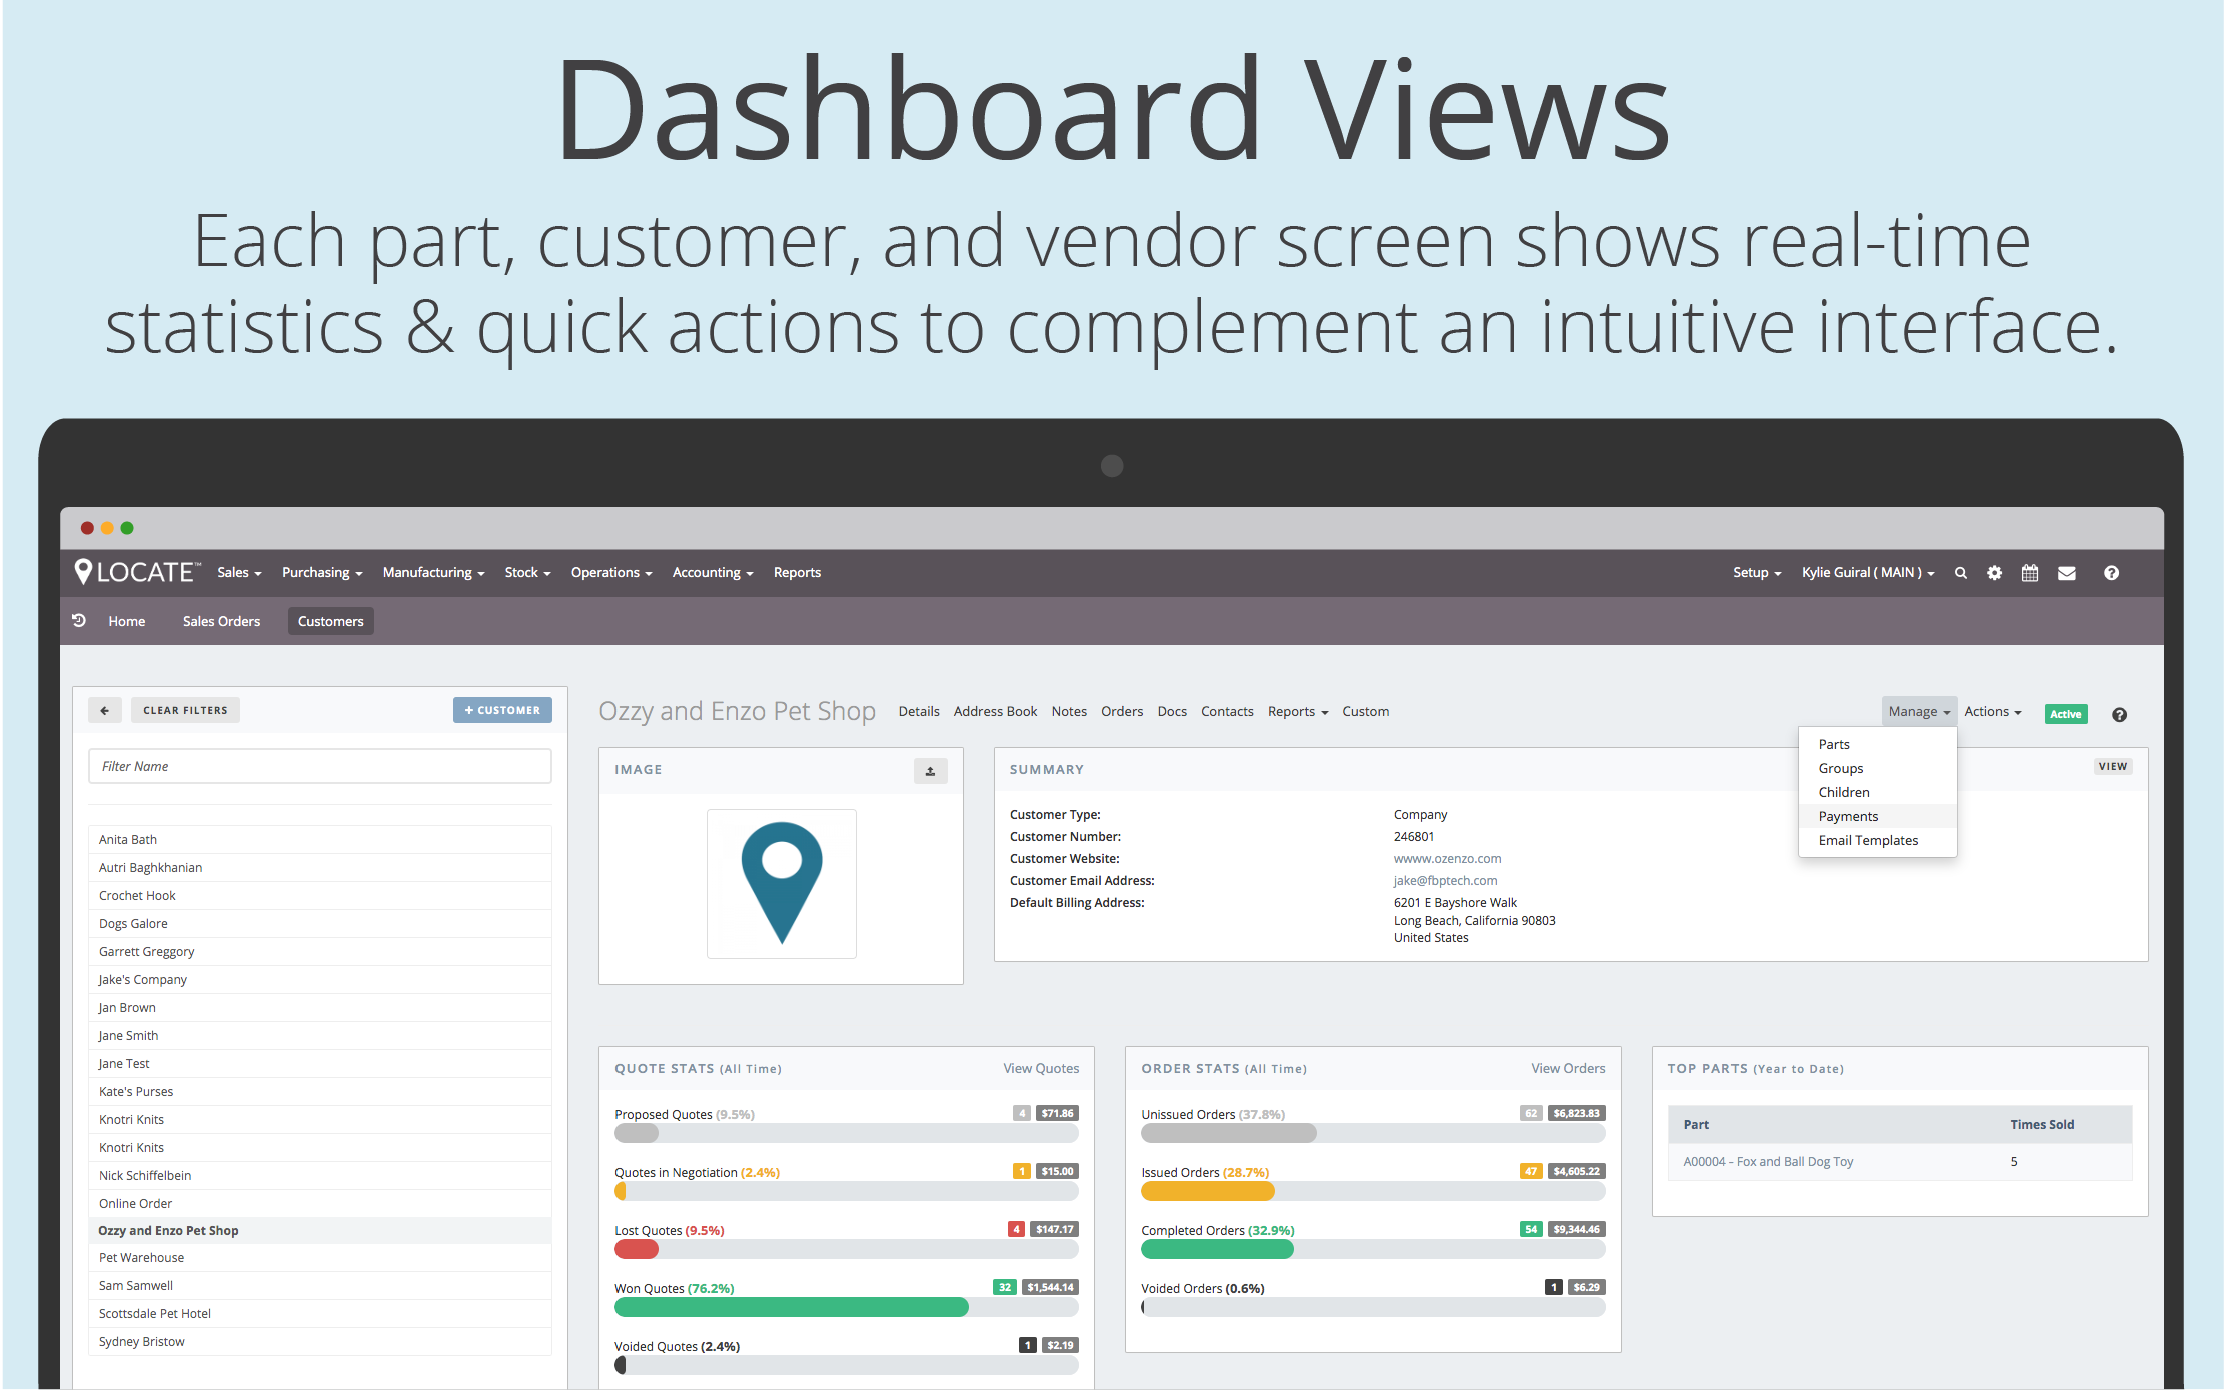 View customer information, quote stats, order stats and top parts at-a-glance